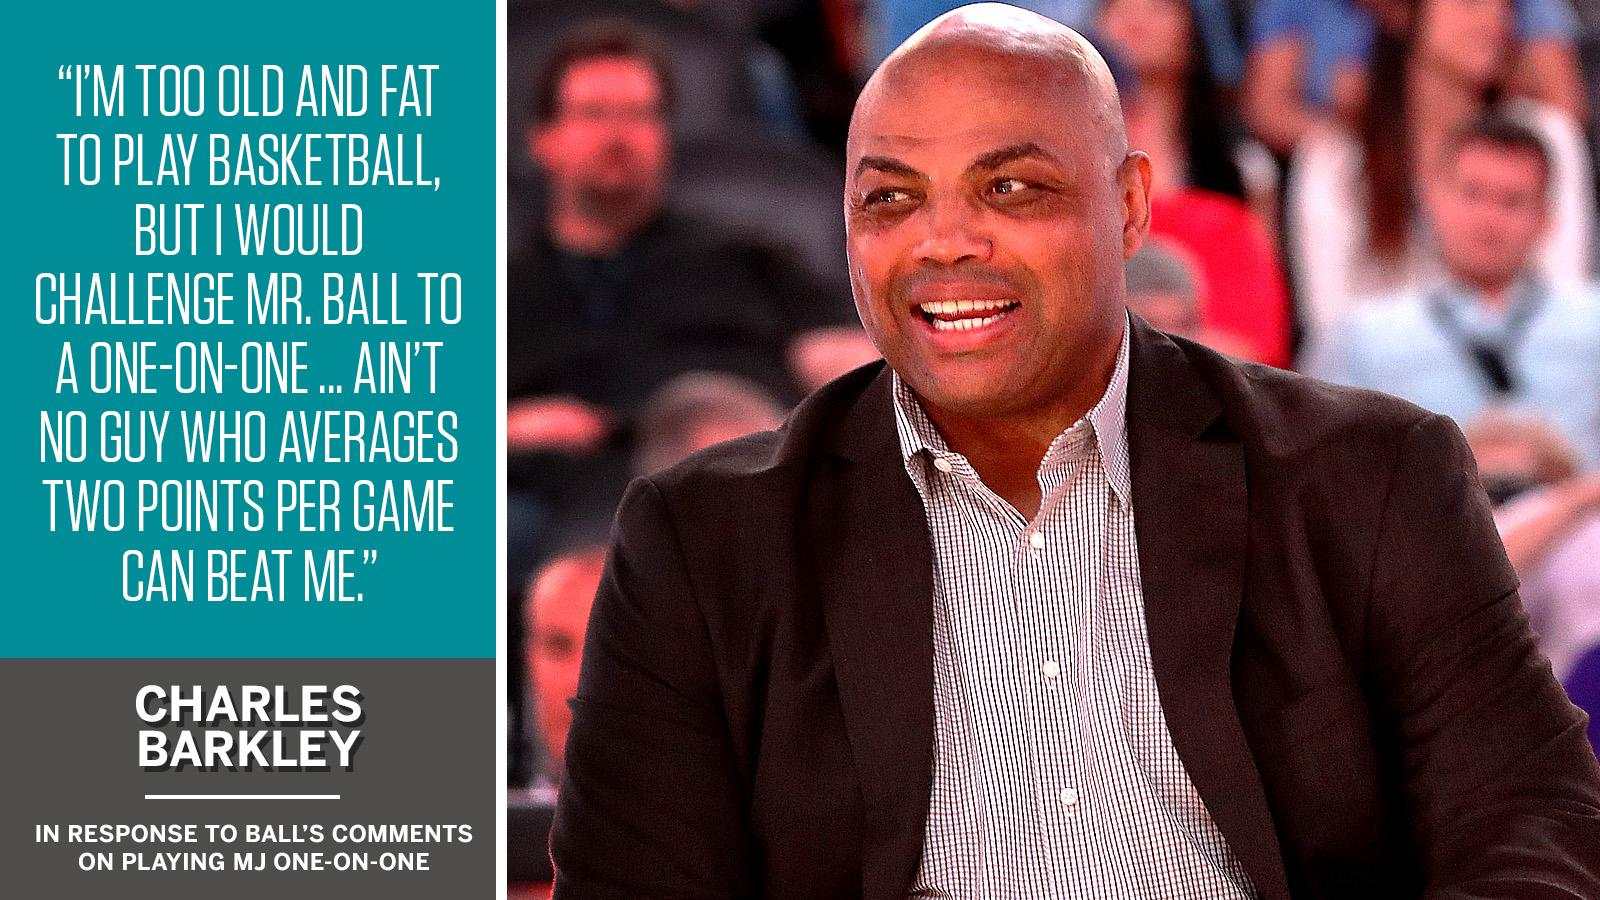 Charles Barkley tells @MikeAndMike that LaVar Ball would have no chance against him. https://t.co/8H2enPSQYS https://t.co/TYfLCOD1gO